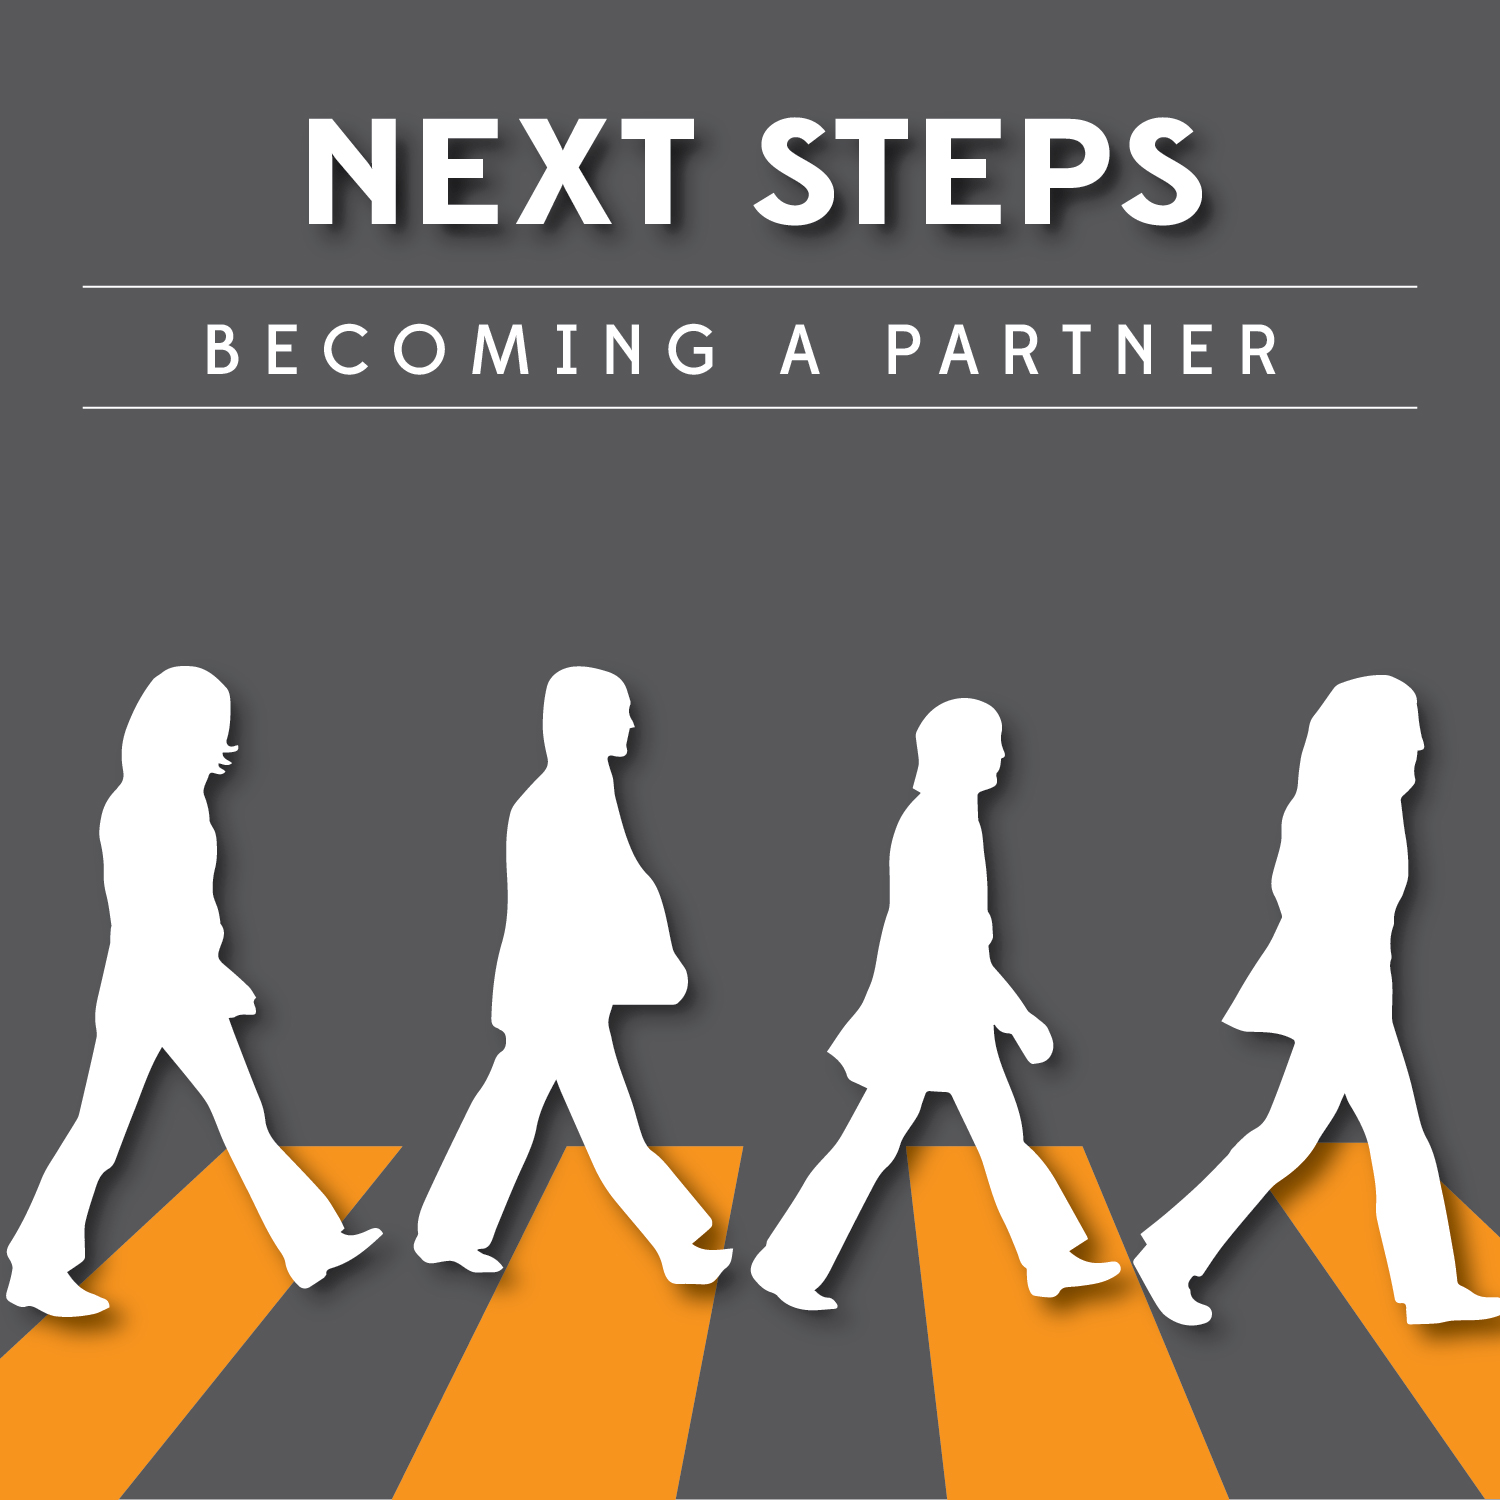 Nextsteps pimretreat2 01